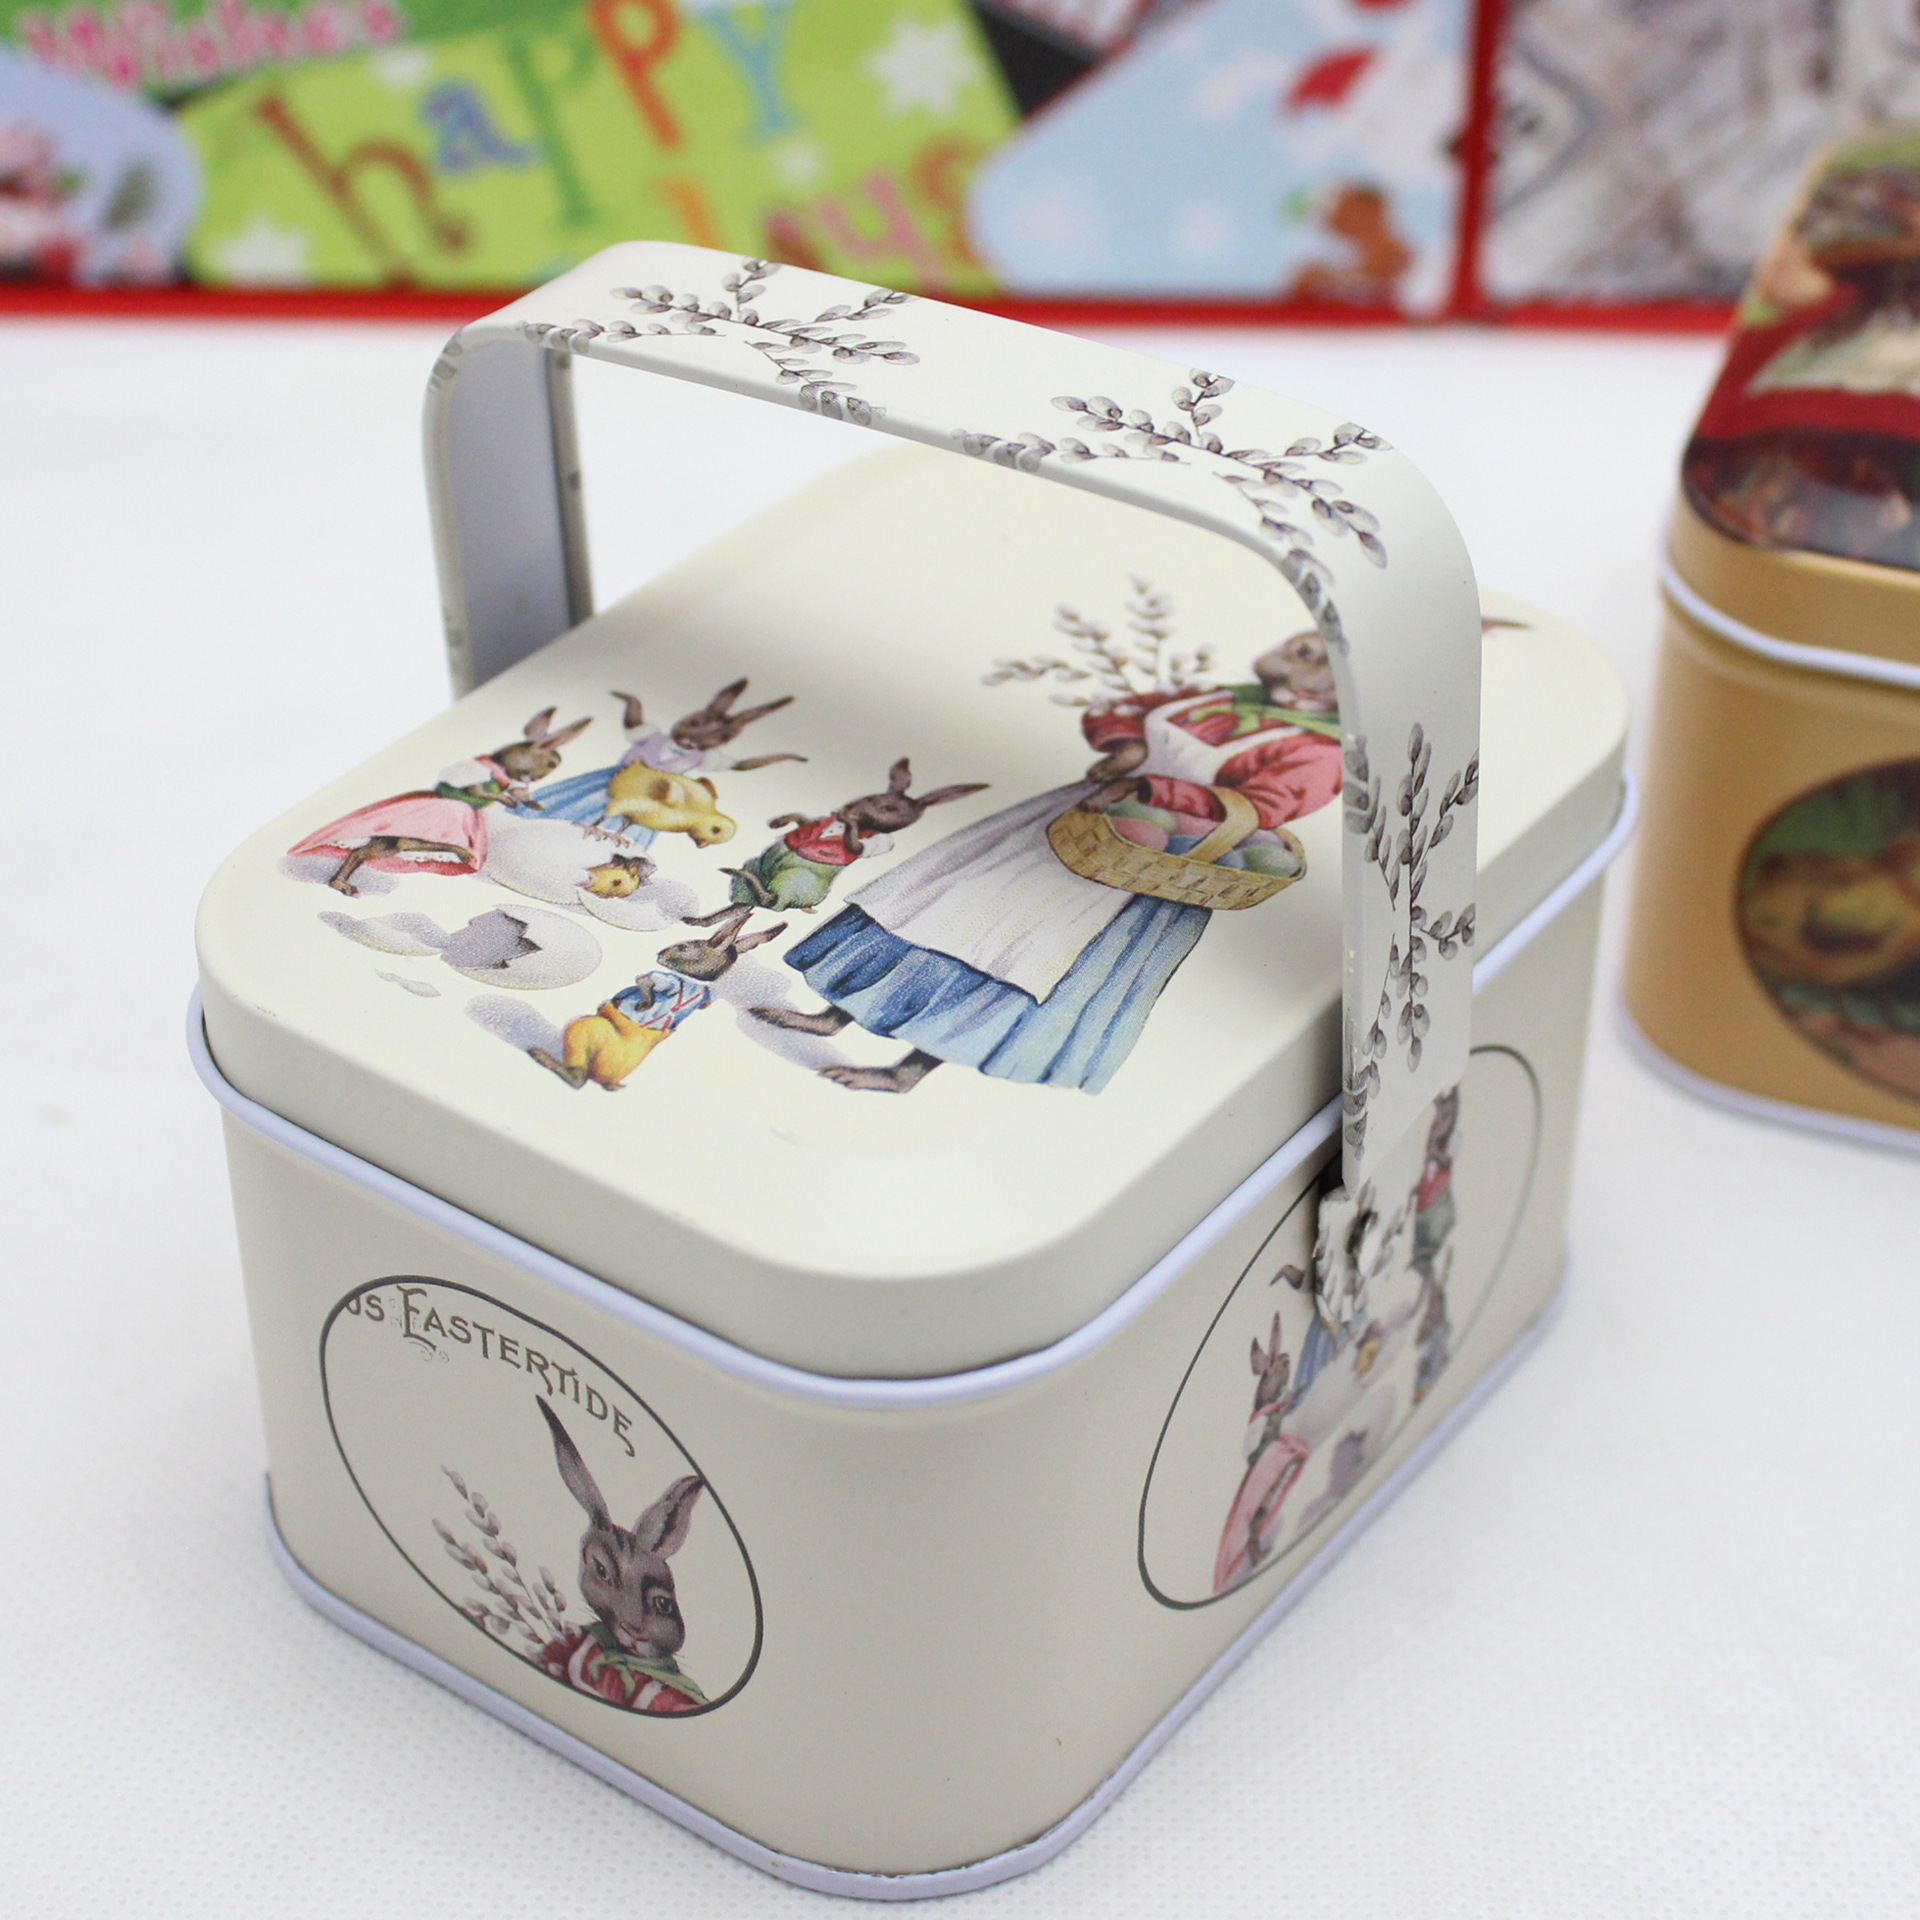 New arrival vintage small suitcase storage tin candy box change box earphones box small suitcase